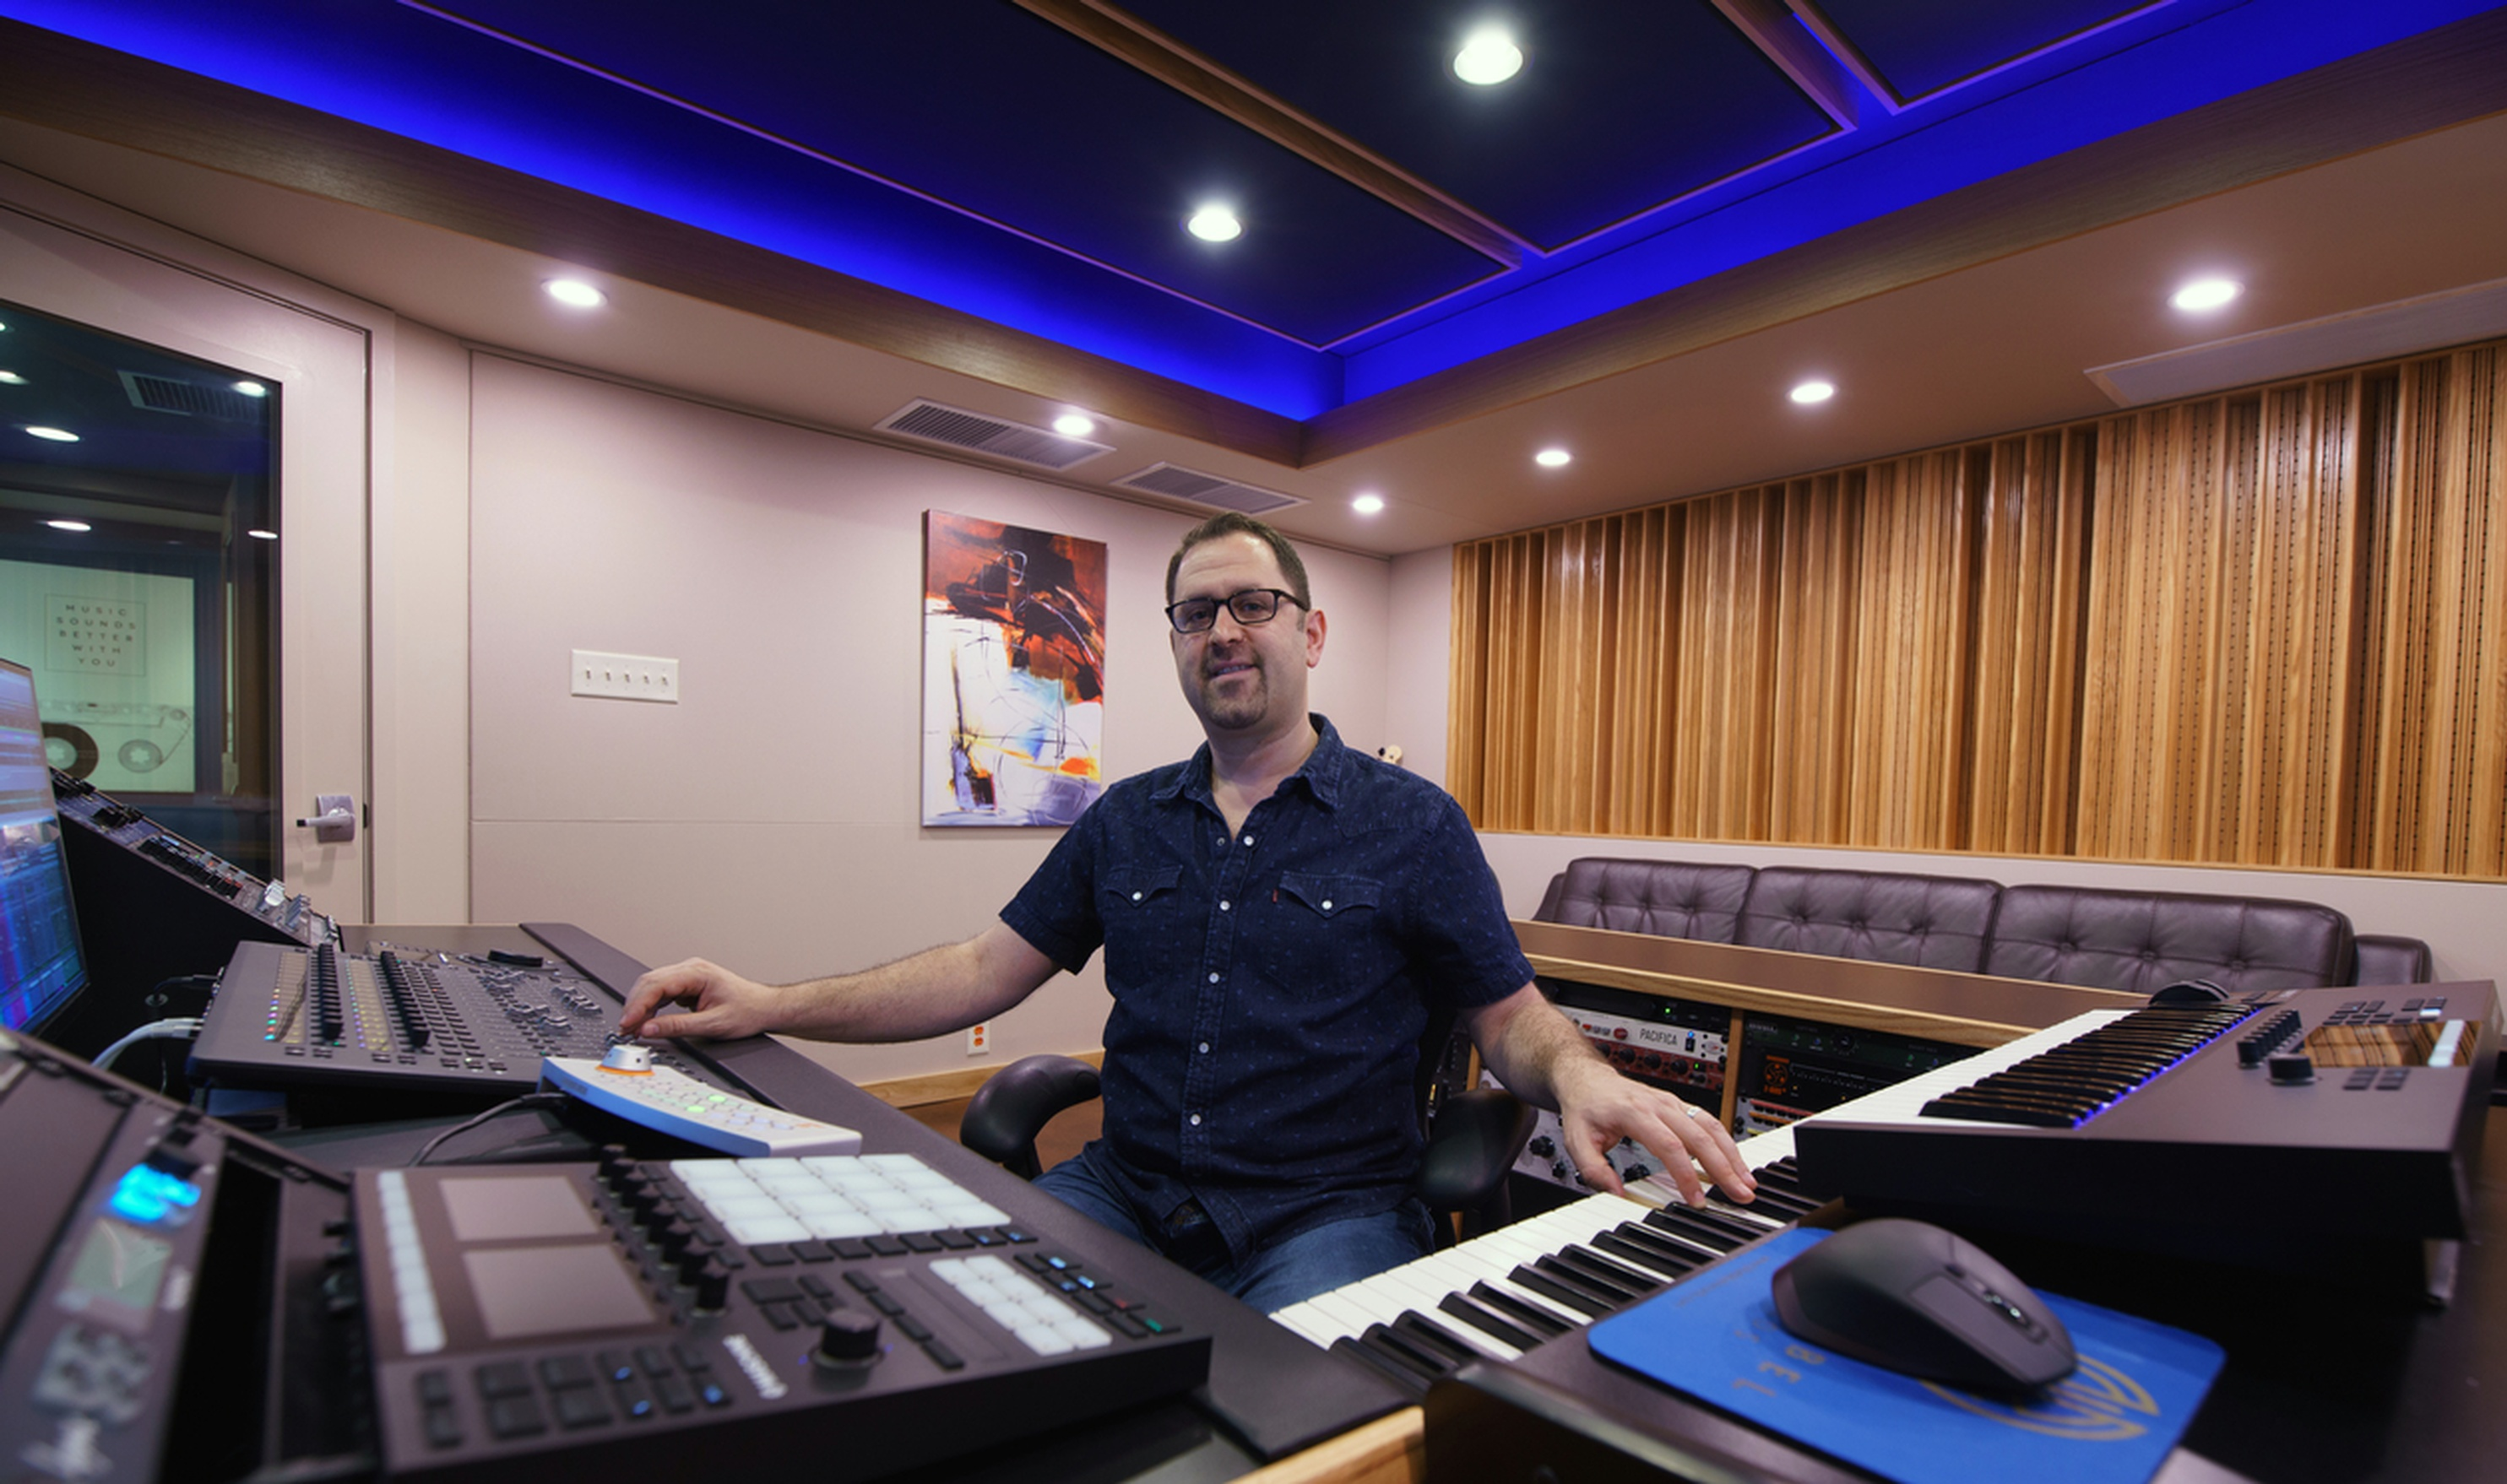 Dave Mallen Composing in Control Room - Best Music Recording Studio DC - Innovation Station Music